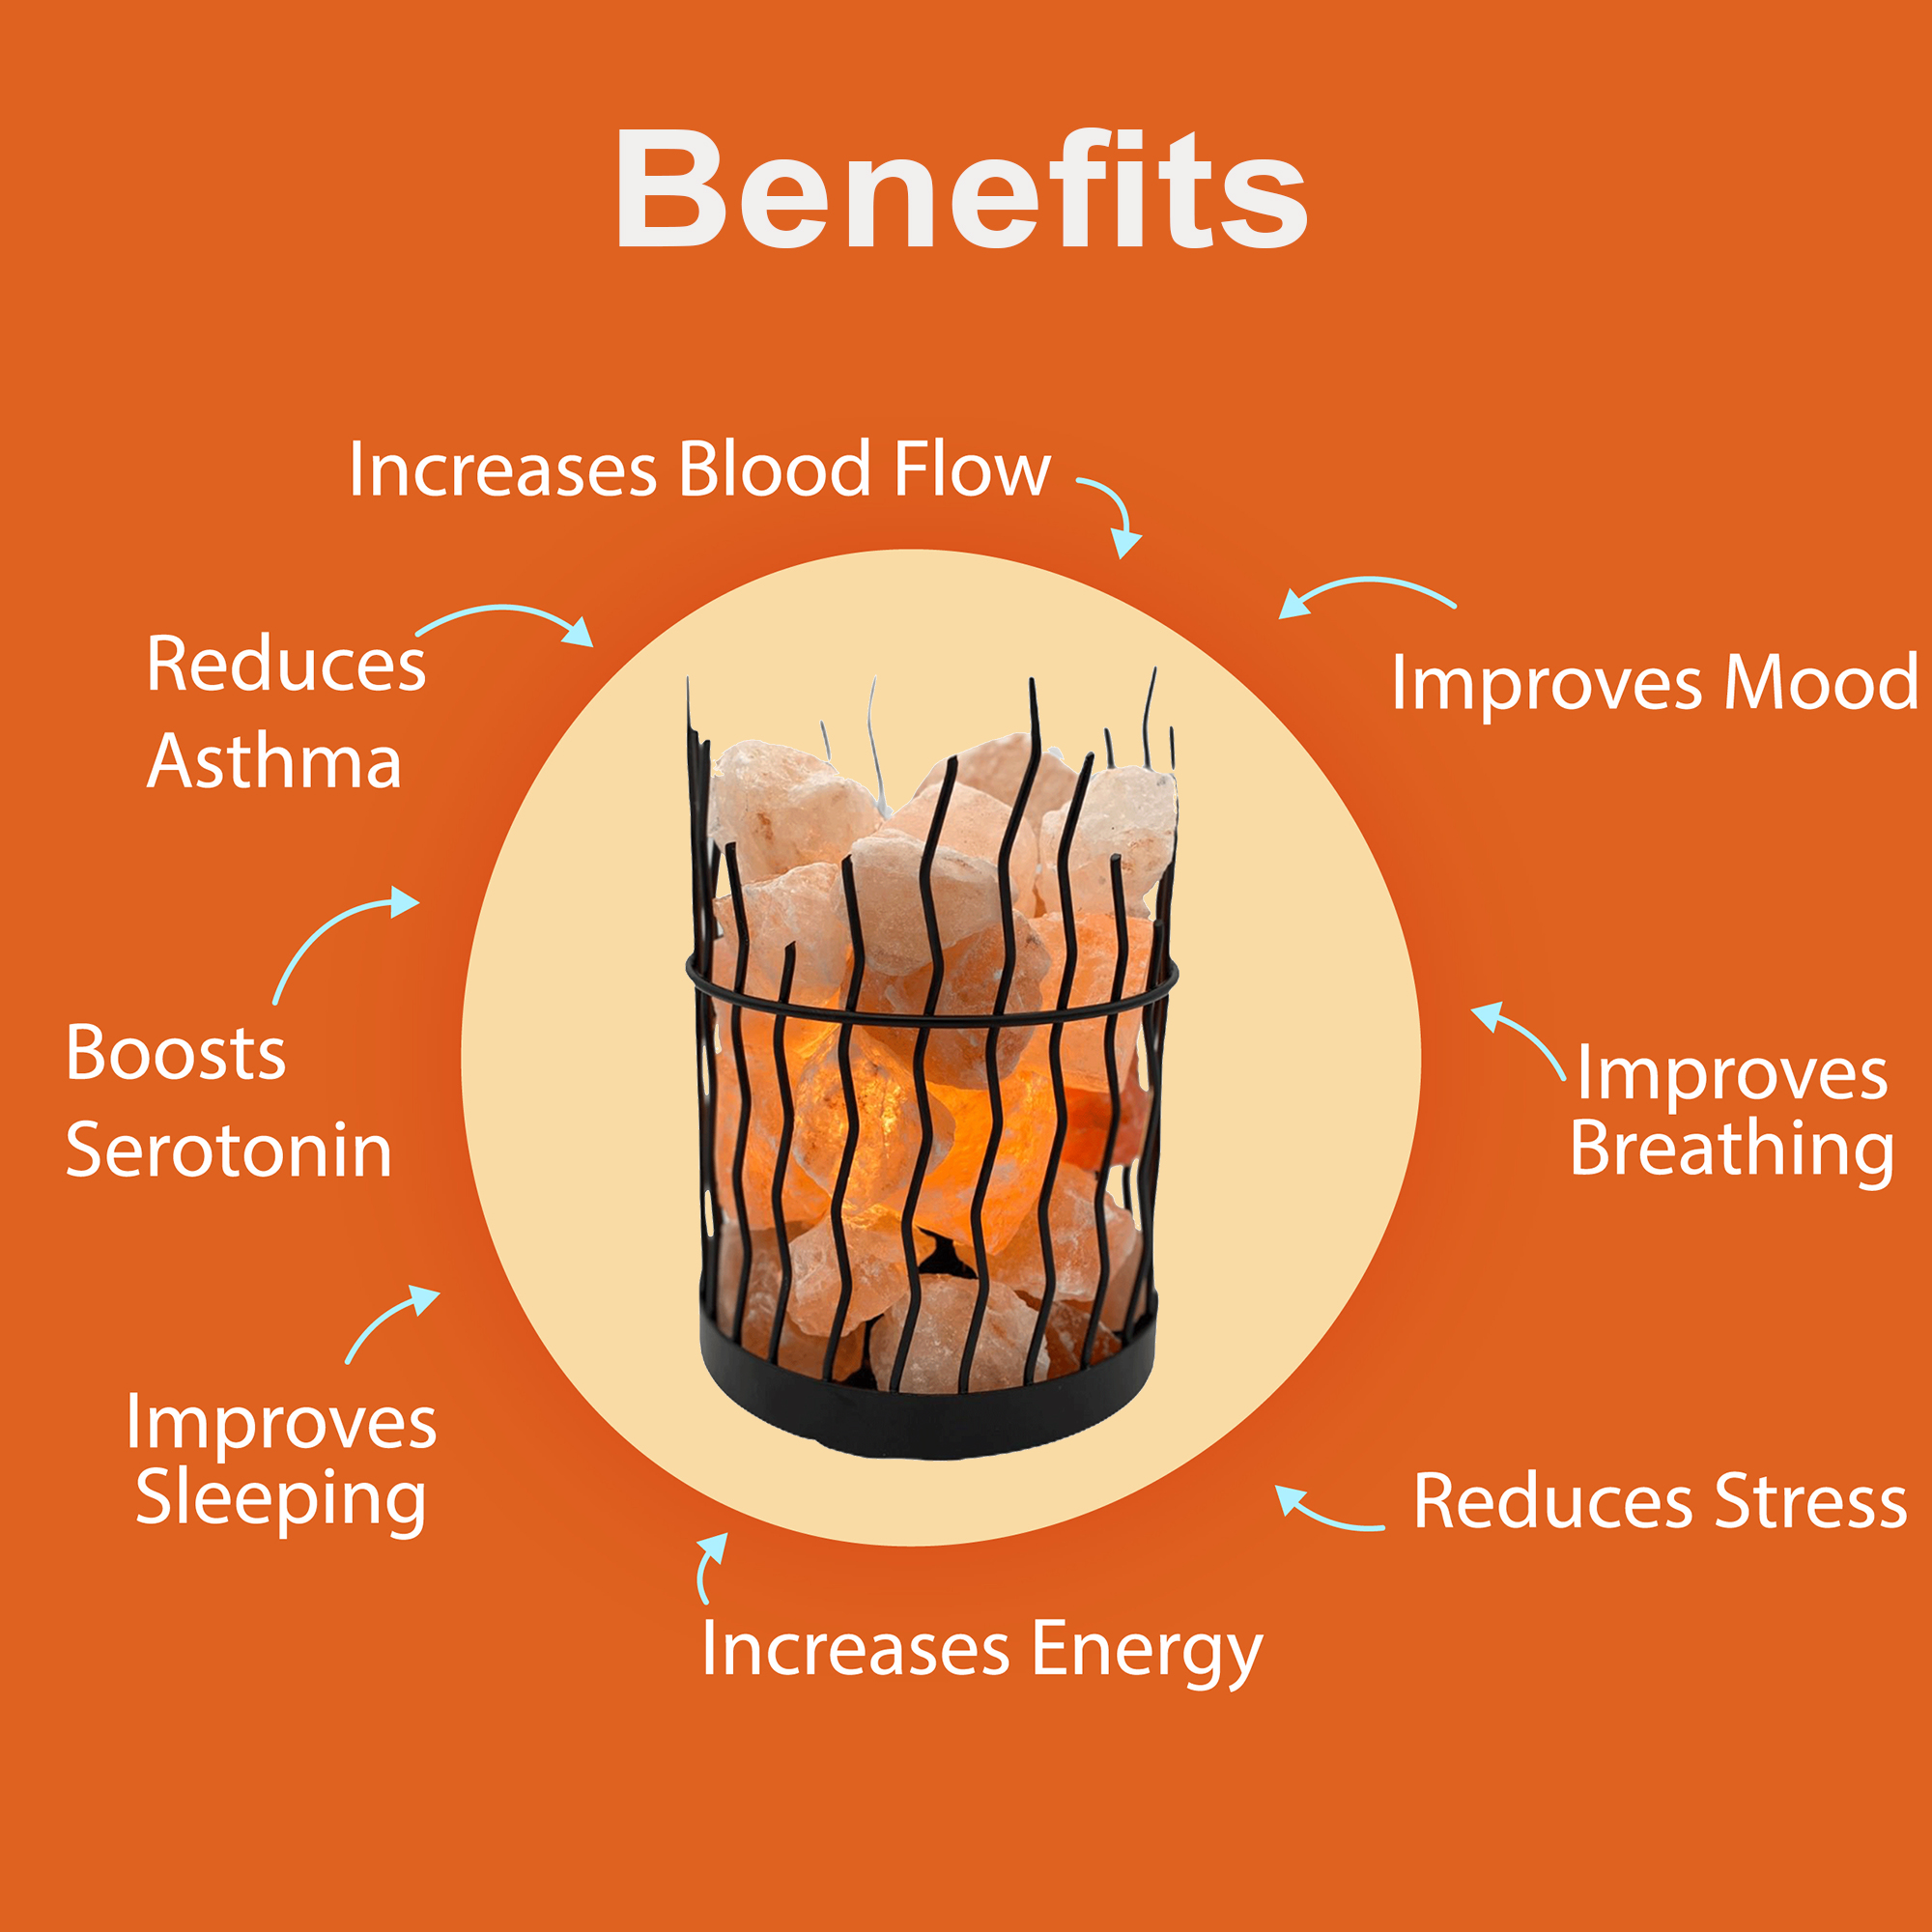 7 benefits 66 - Saltpur Himalayan Salts